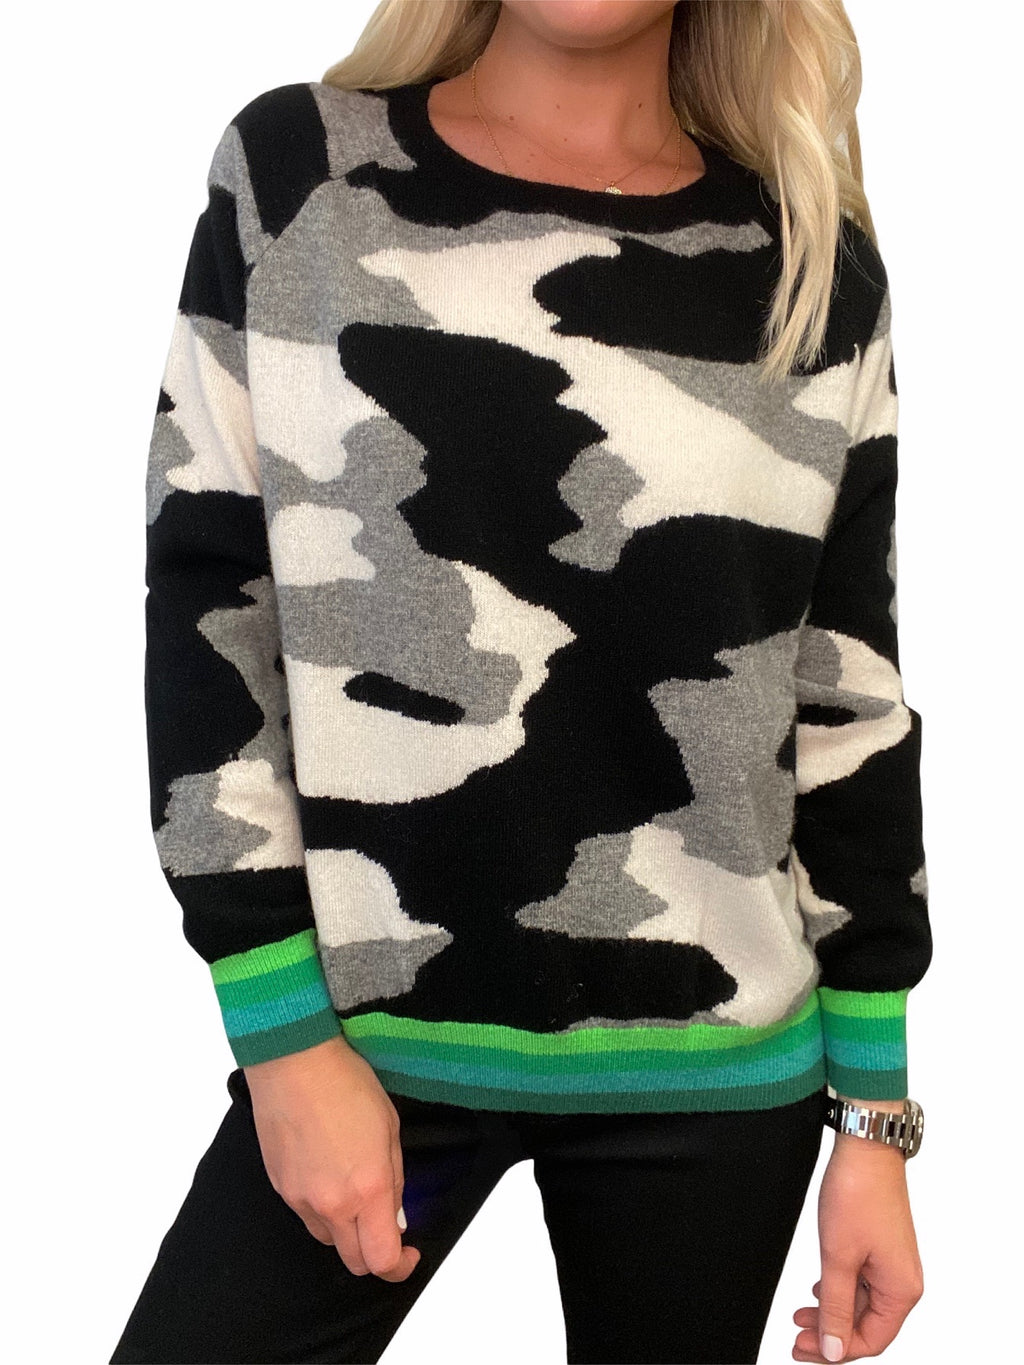 Camo Cashmere Sweater